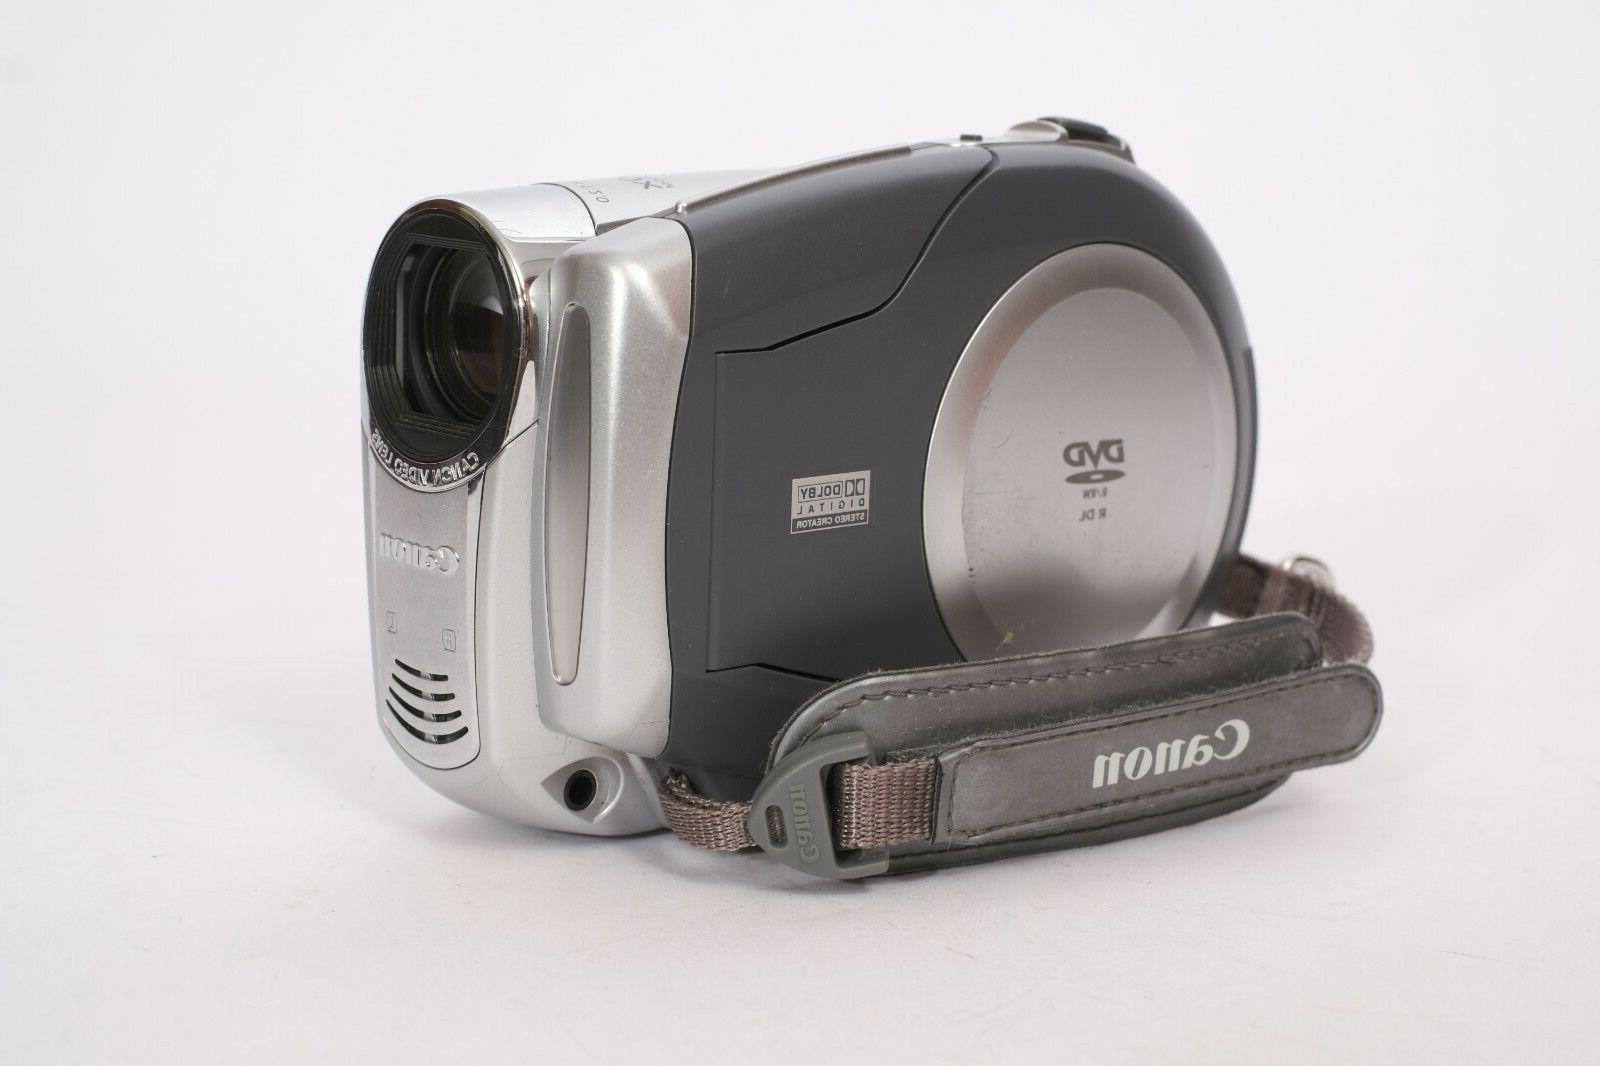 dvd camcorder dc210 with charger and battery